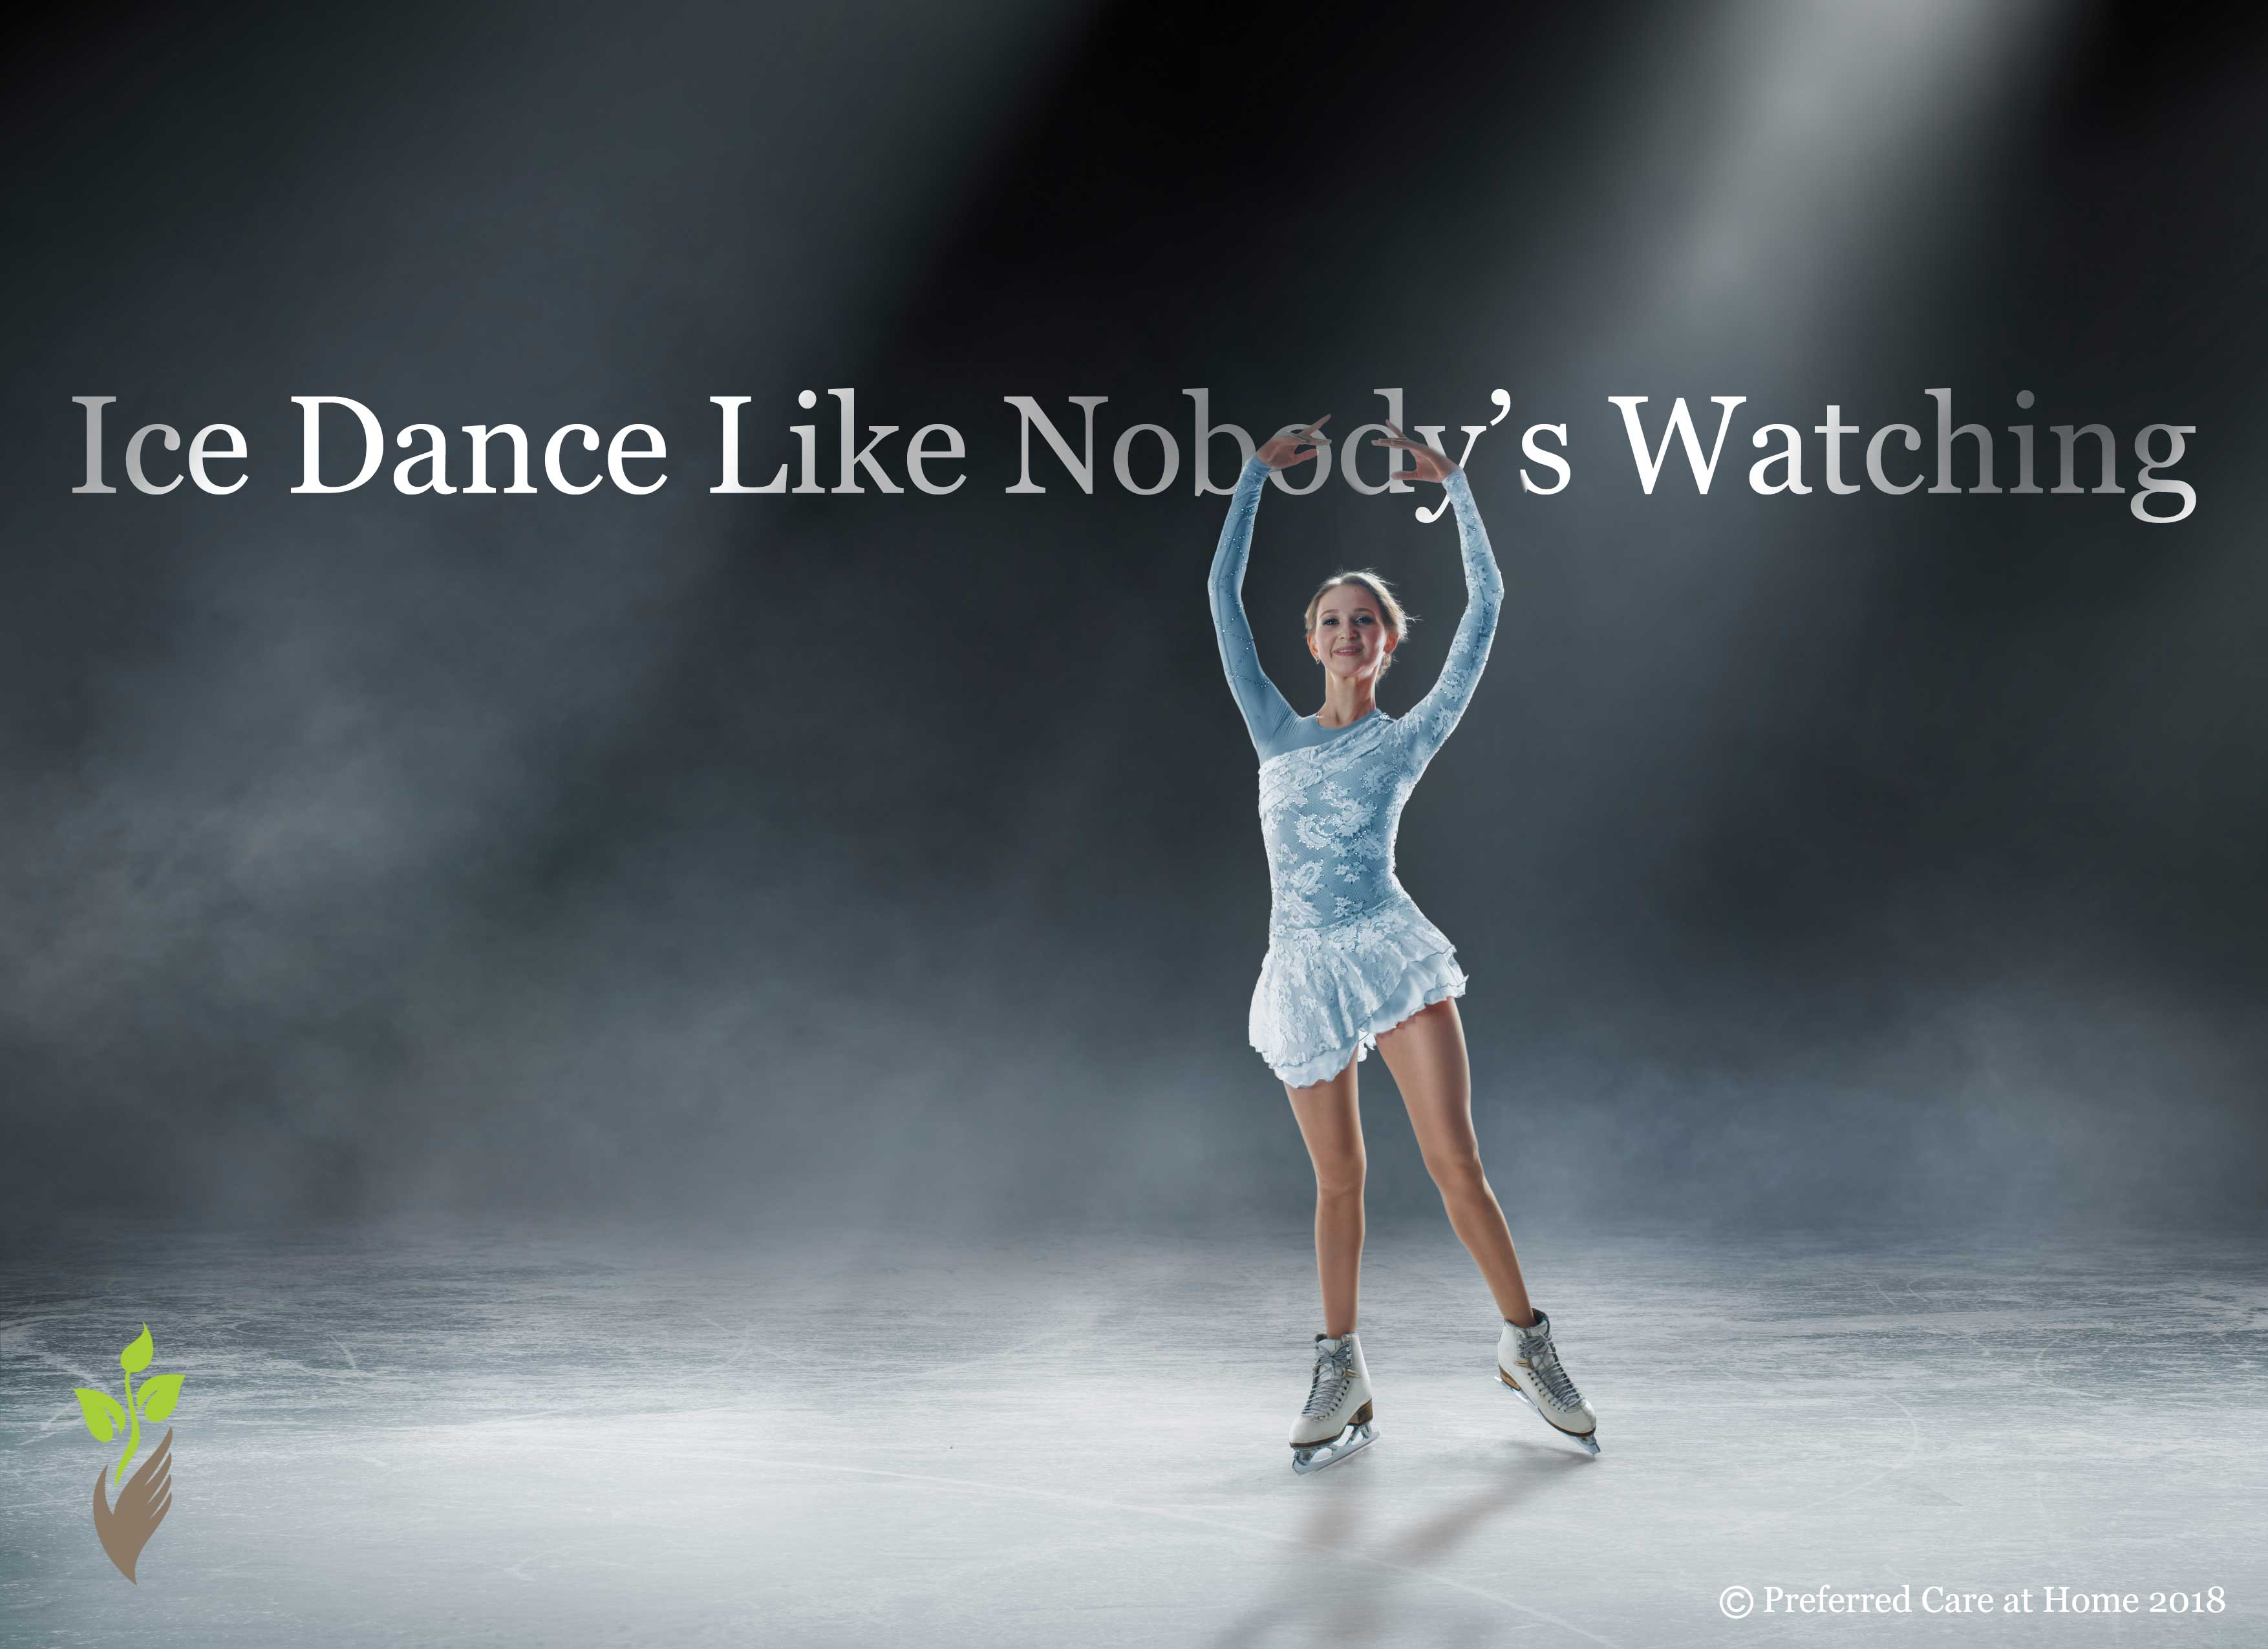 The Winter Olympics: Ice Dance Like Nobody's Watching